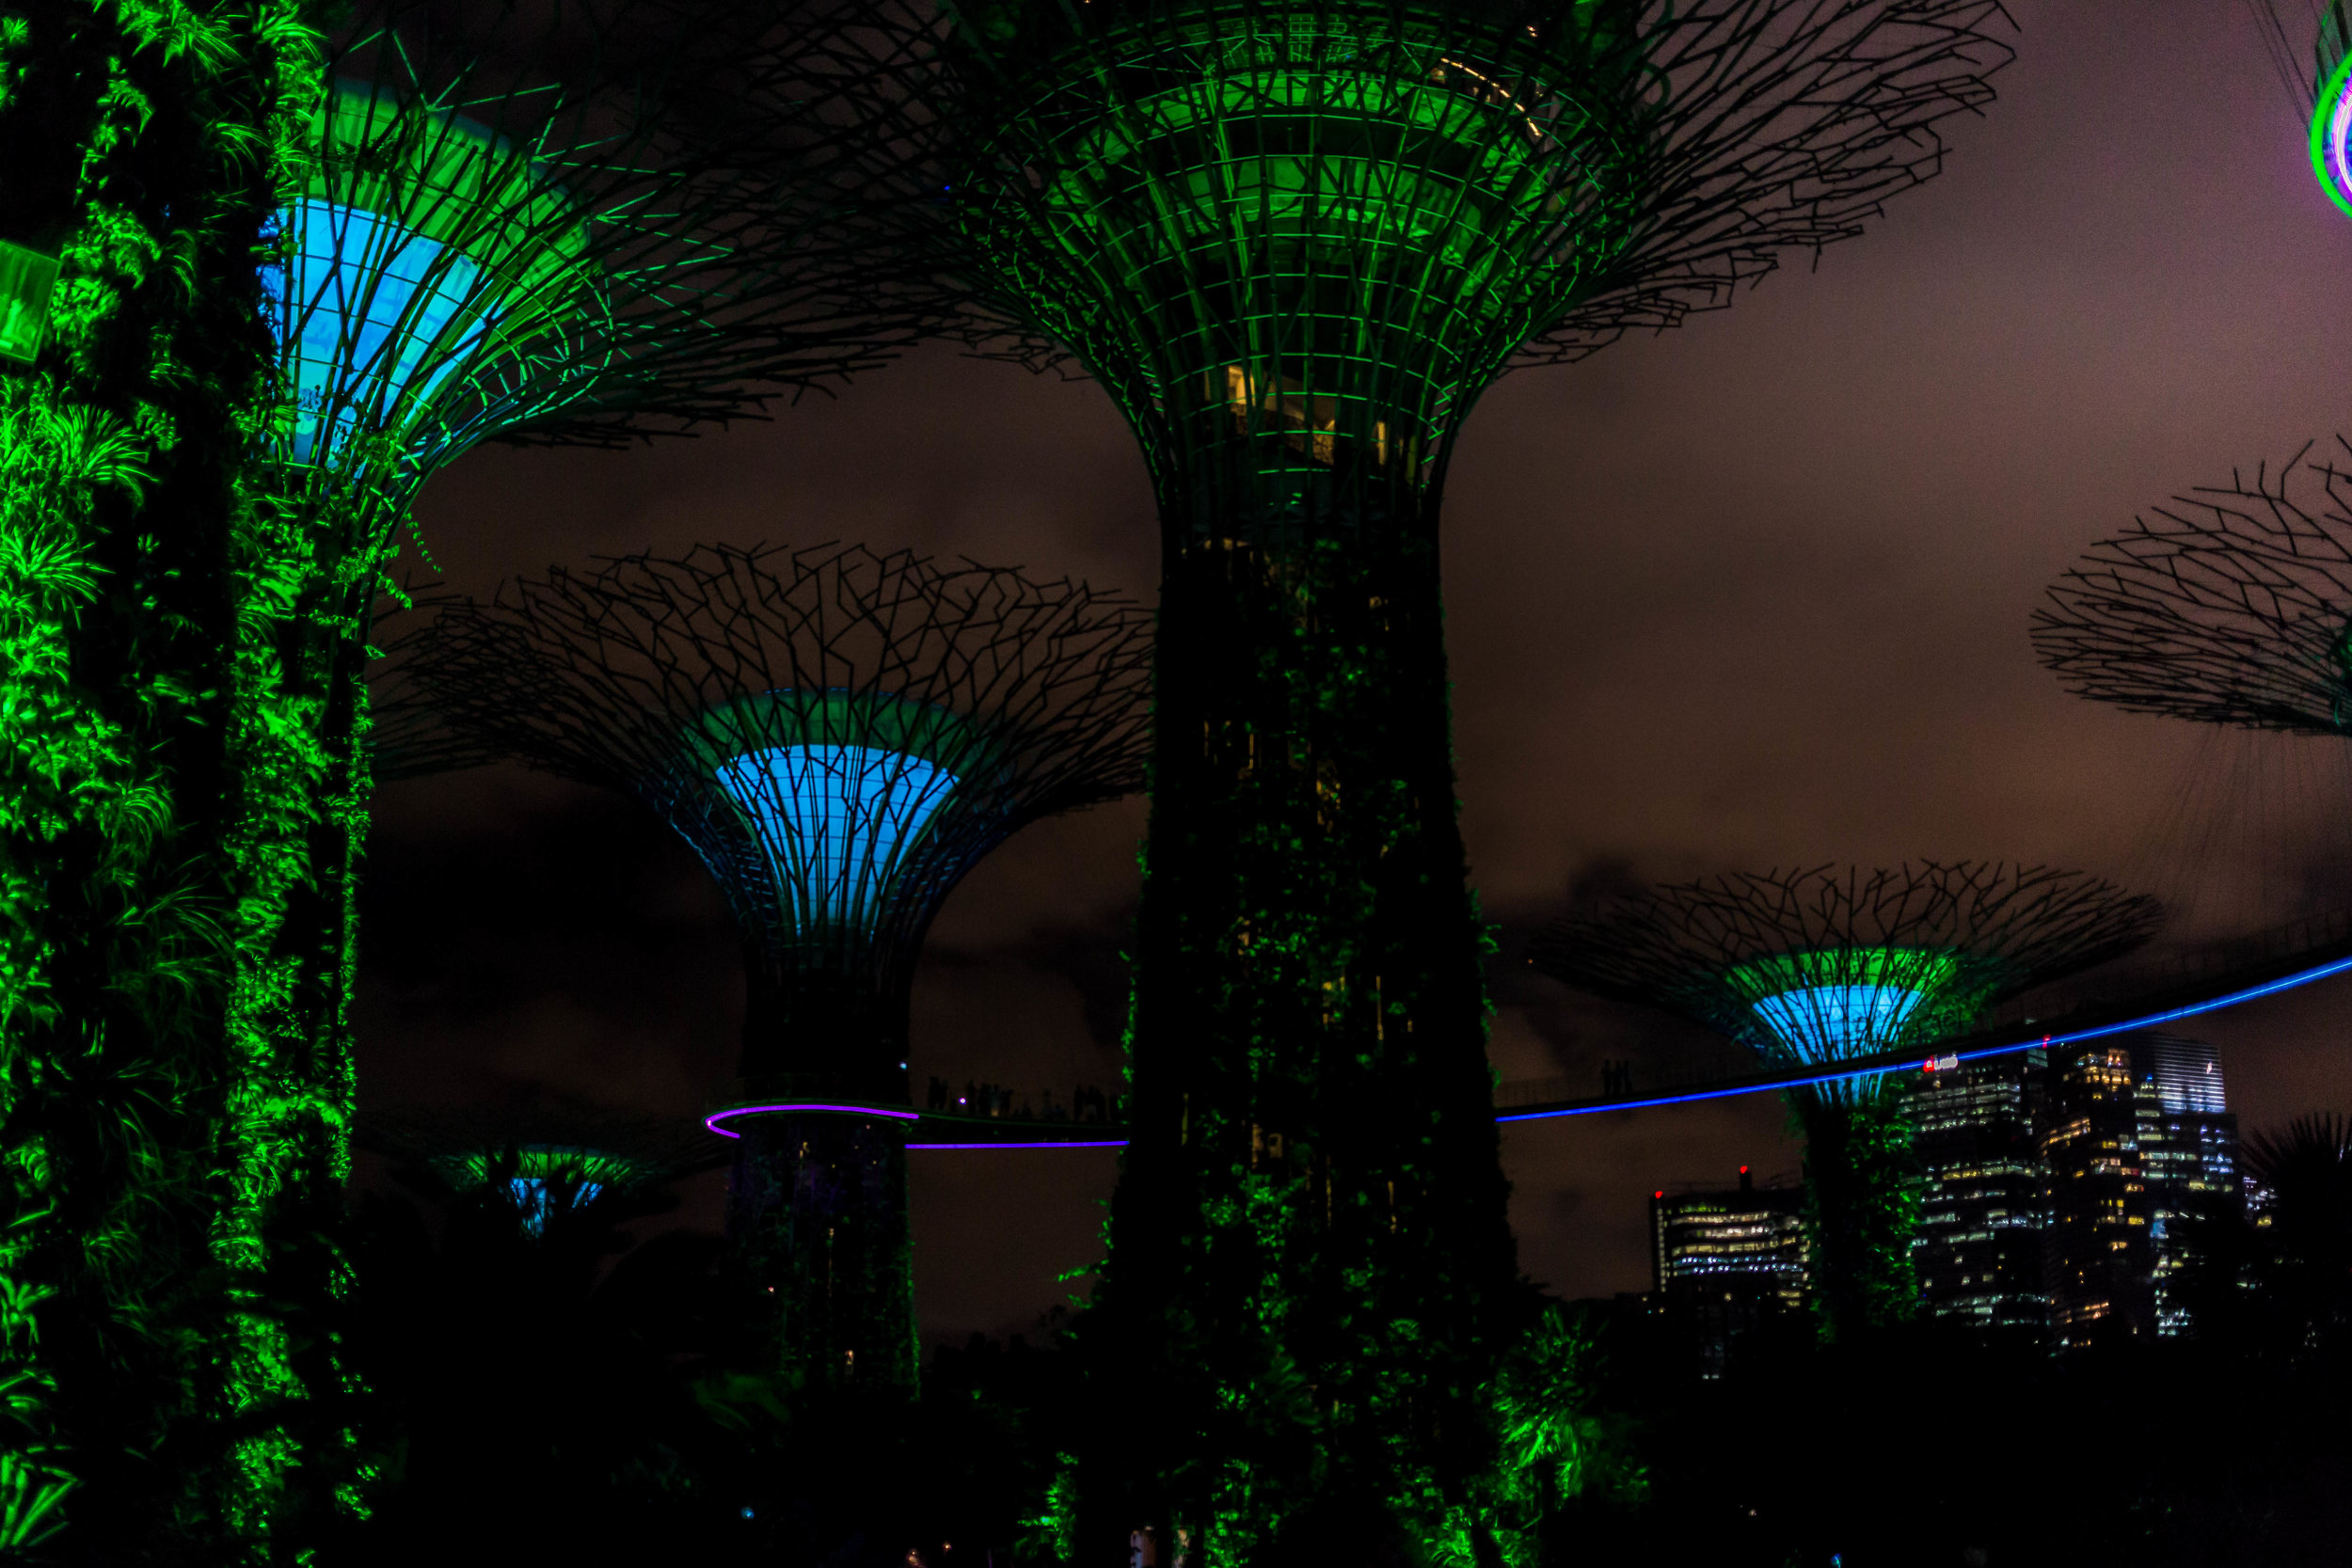 Singapore is always working on new ambitious projects. - The Supertree Grove in the Gardens by the Bay is a relatively new development with 160-foot trees covered in beautiful, exotic flora. Stick around for the Garden Rhapsody every night at 7:45 and 8:45.  Soon they will also host the world's largest indoor waterfall, which is sure to be another spectacle that shouldn't be missed.